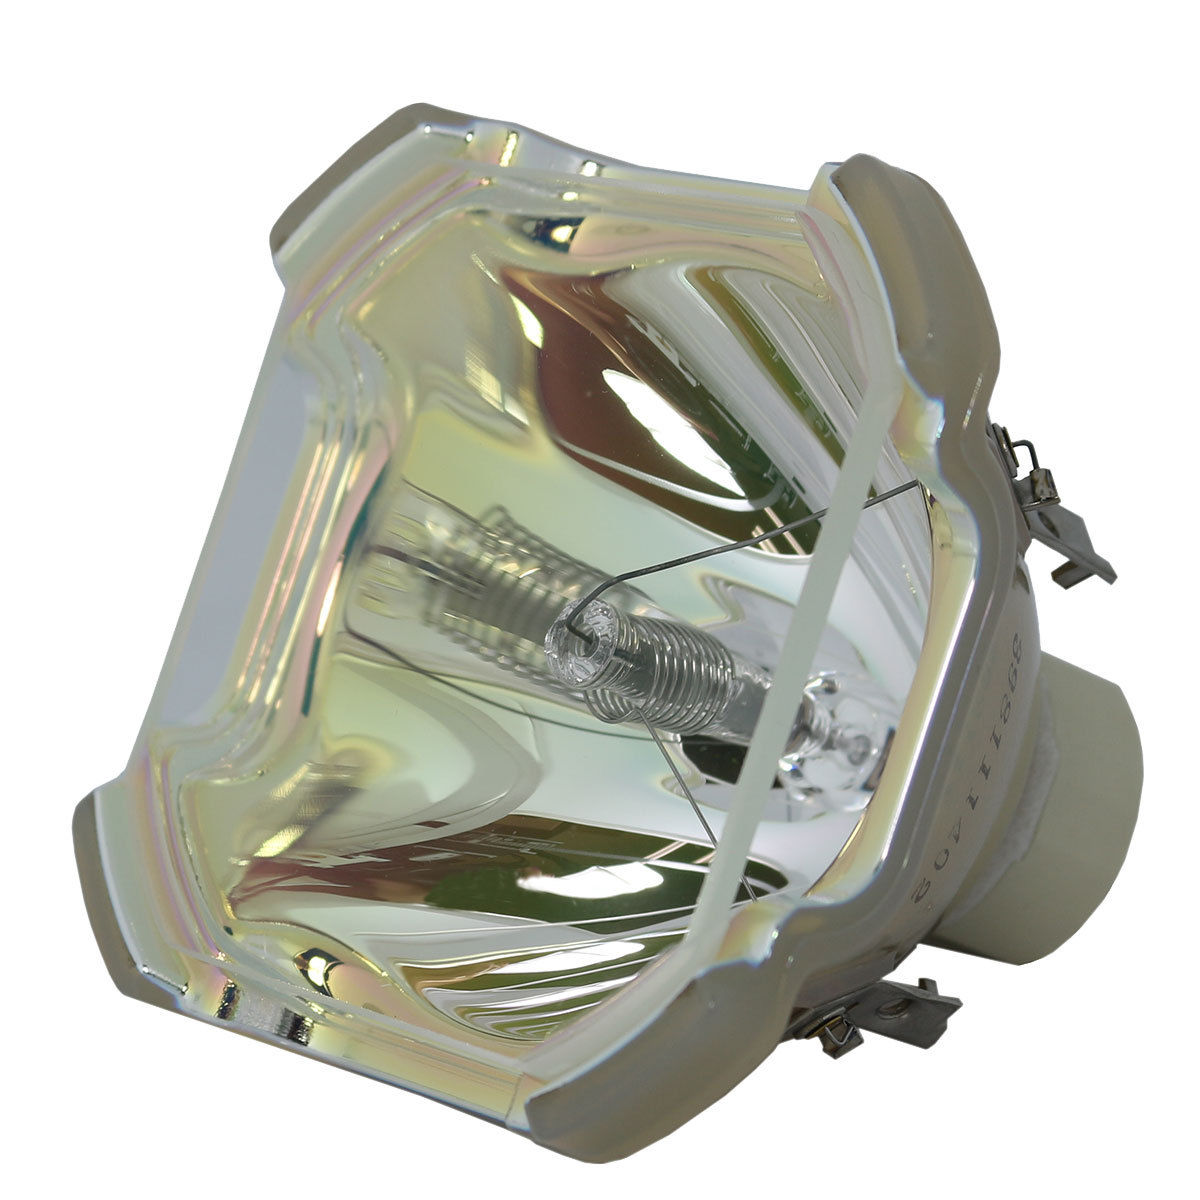 Compatible Bare Bulb POA-LMP128 LMP128 610-341-9497 for SANYO PLC-XF71 PLC-XF1000 Projector Lamp Bulb without housing compatible projector lamp for sanyo 610 292 4831 poa lmp42 plc uf10 plc xf40 plc xf40l plc xf41